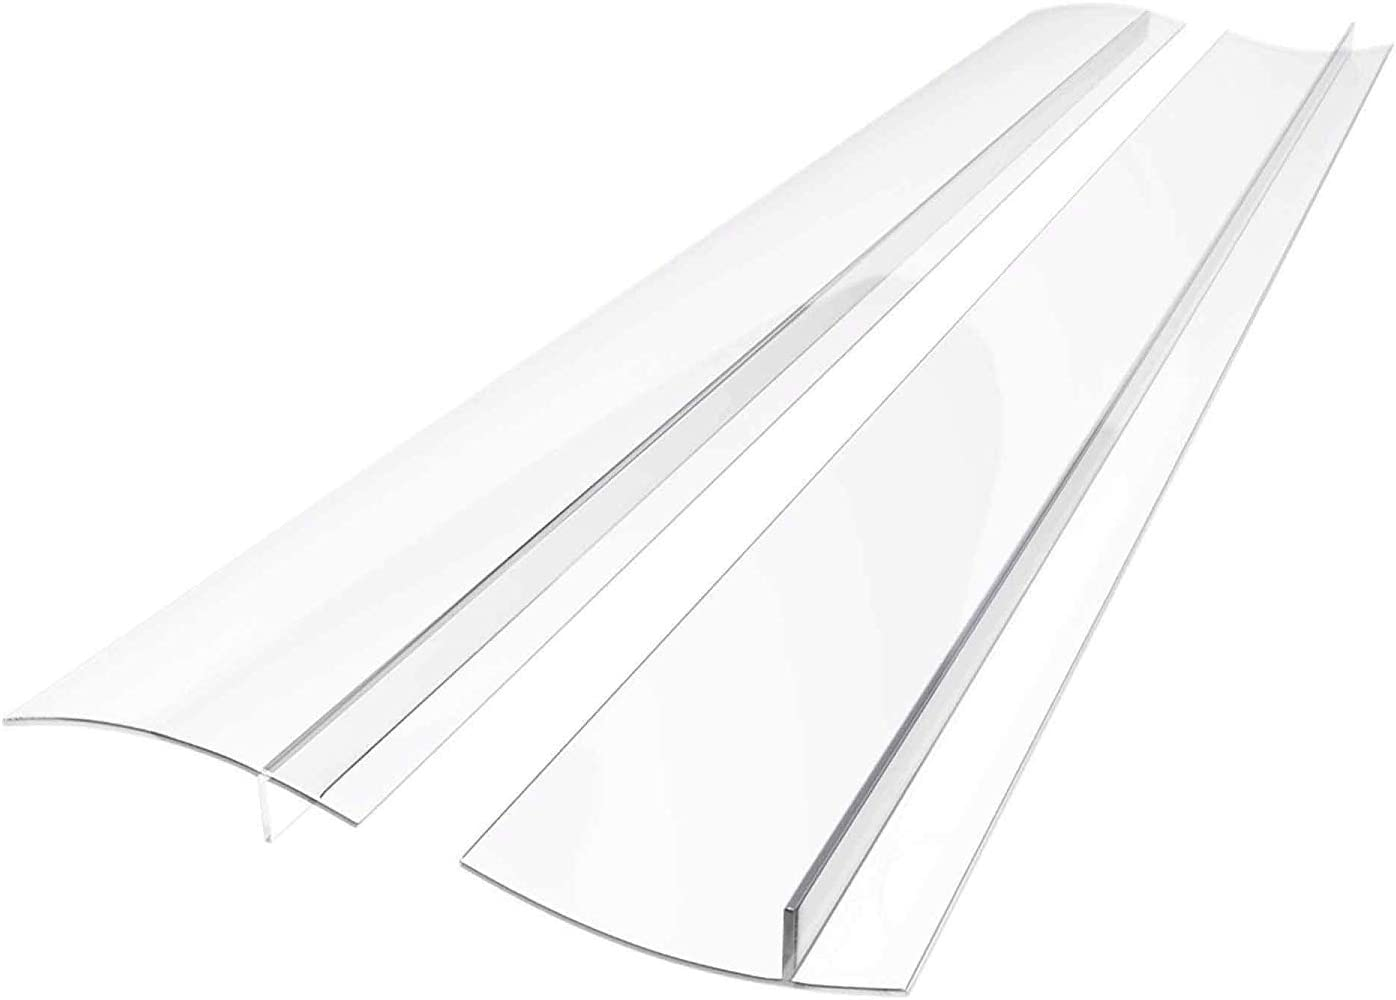 Linda's Silicone Kitchen Stove Counter Gap Cover Long & Wide Gap Filler (2 Pack) Seals Spills Between Counters, Stovetops, Oven, Washer, Dryer | Heat-Resistant and Easy Clean (21 Inches, Ultra Clear)